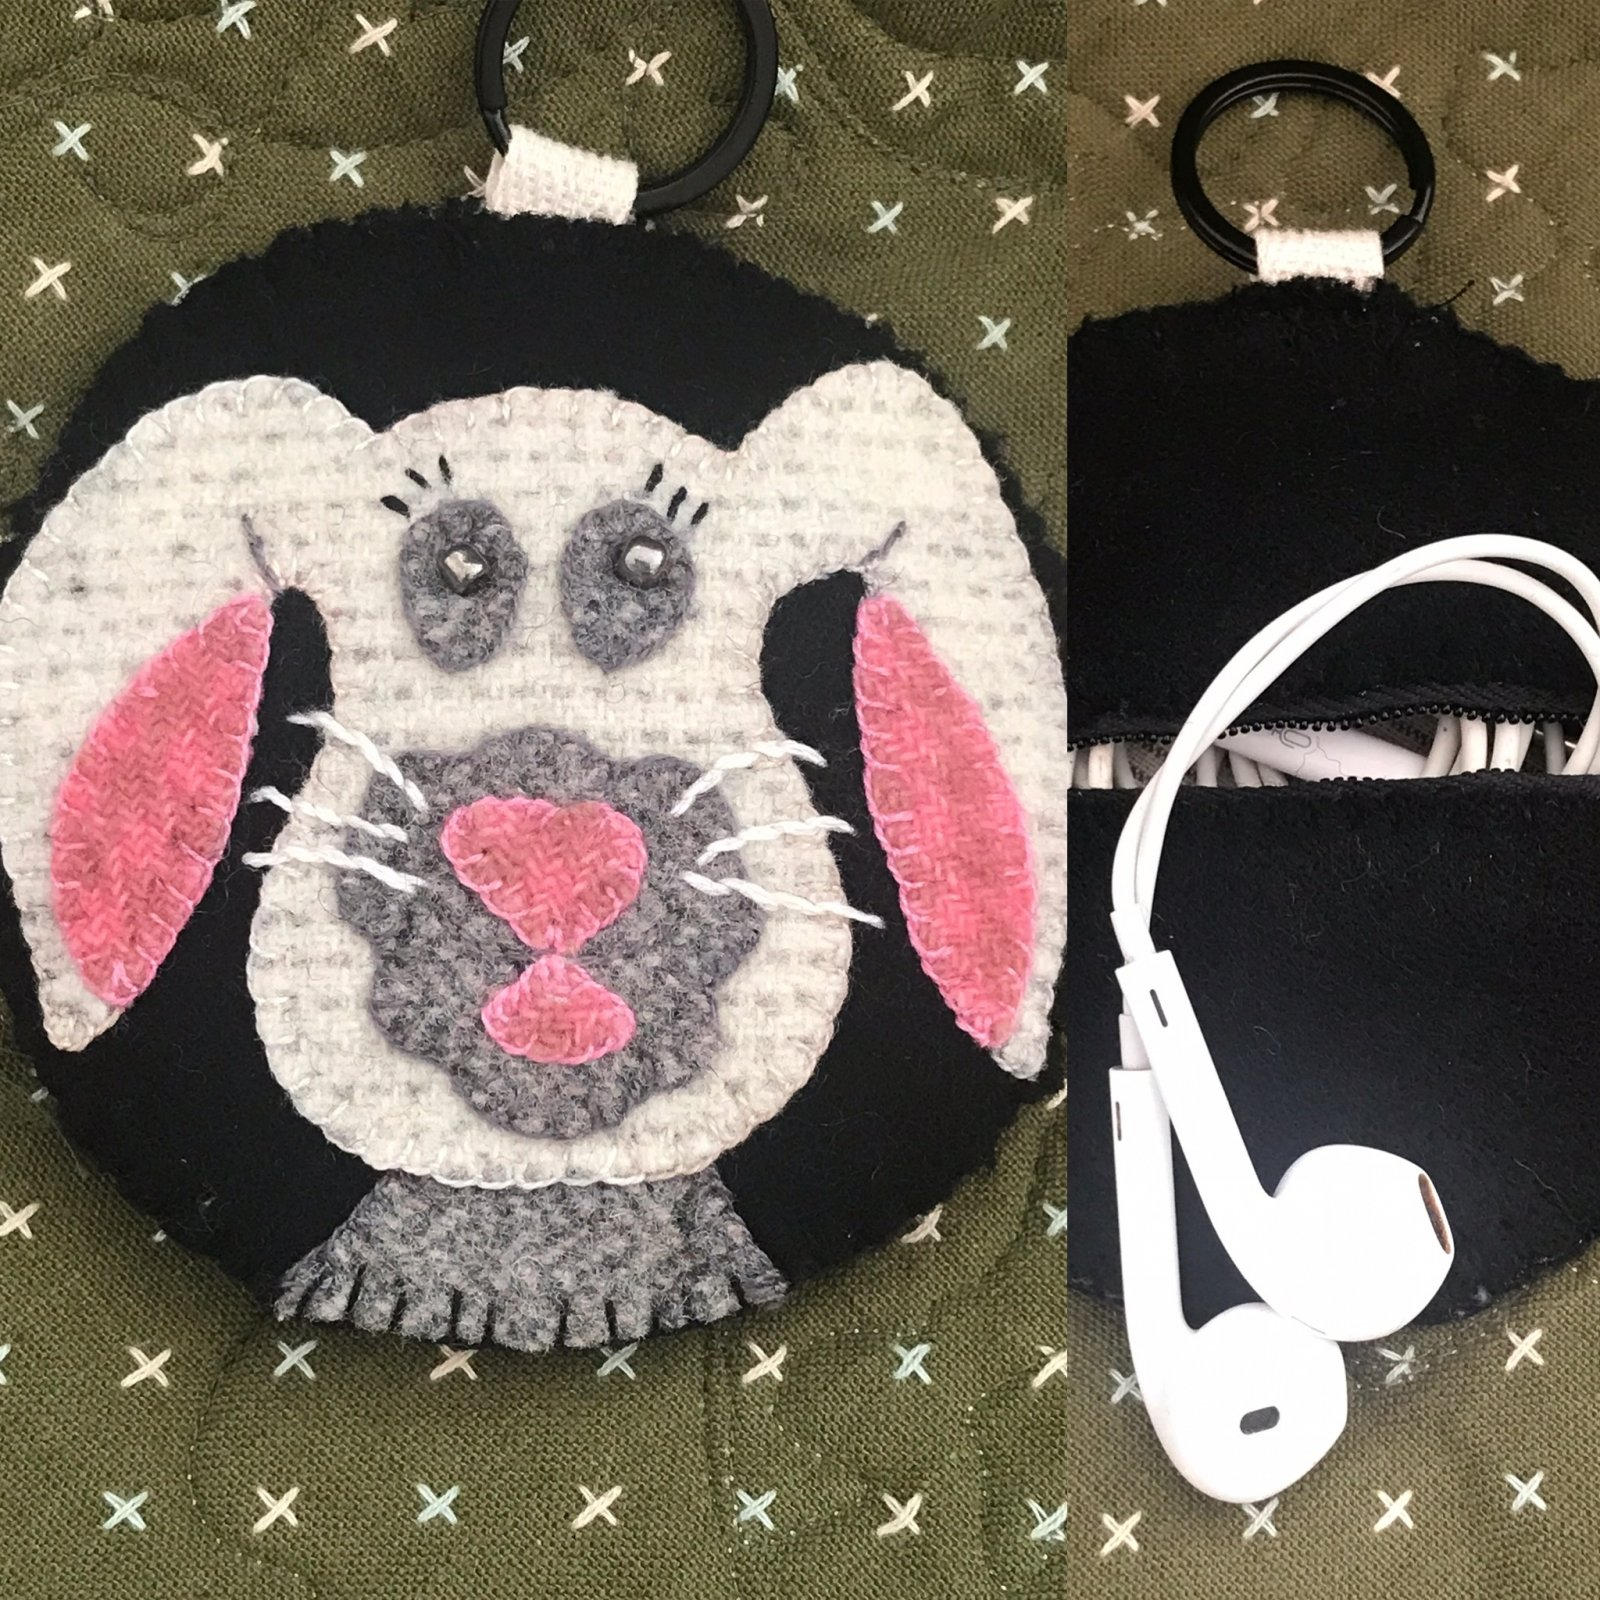 Bunny EarBud/Key Fob Kit Only no pattern